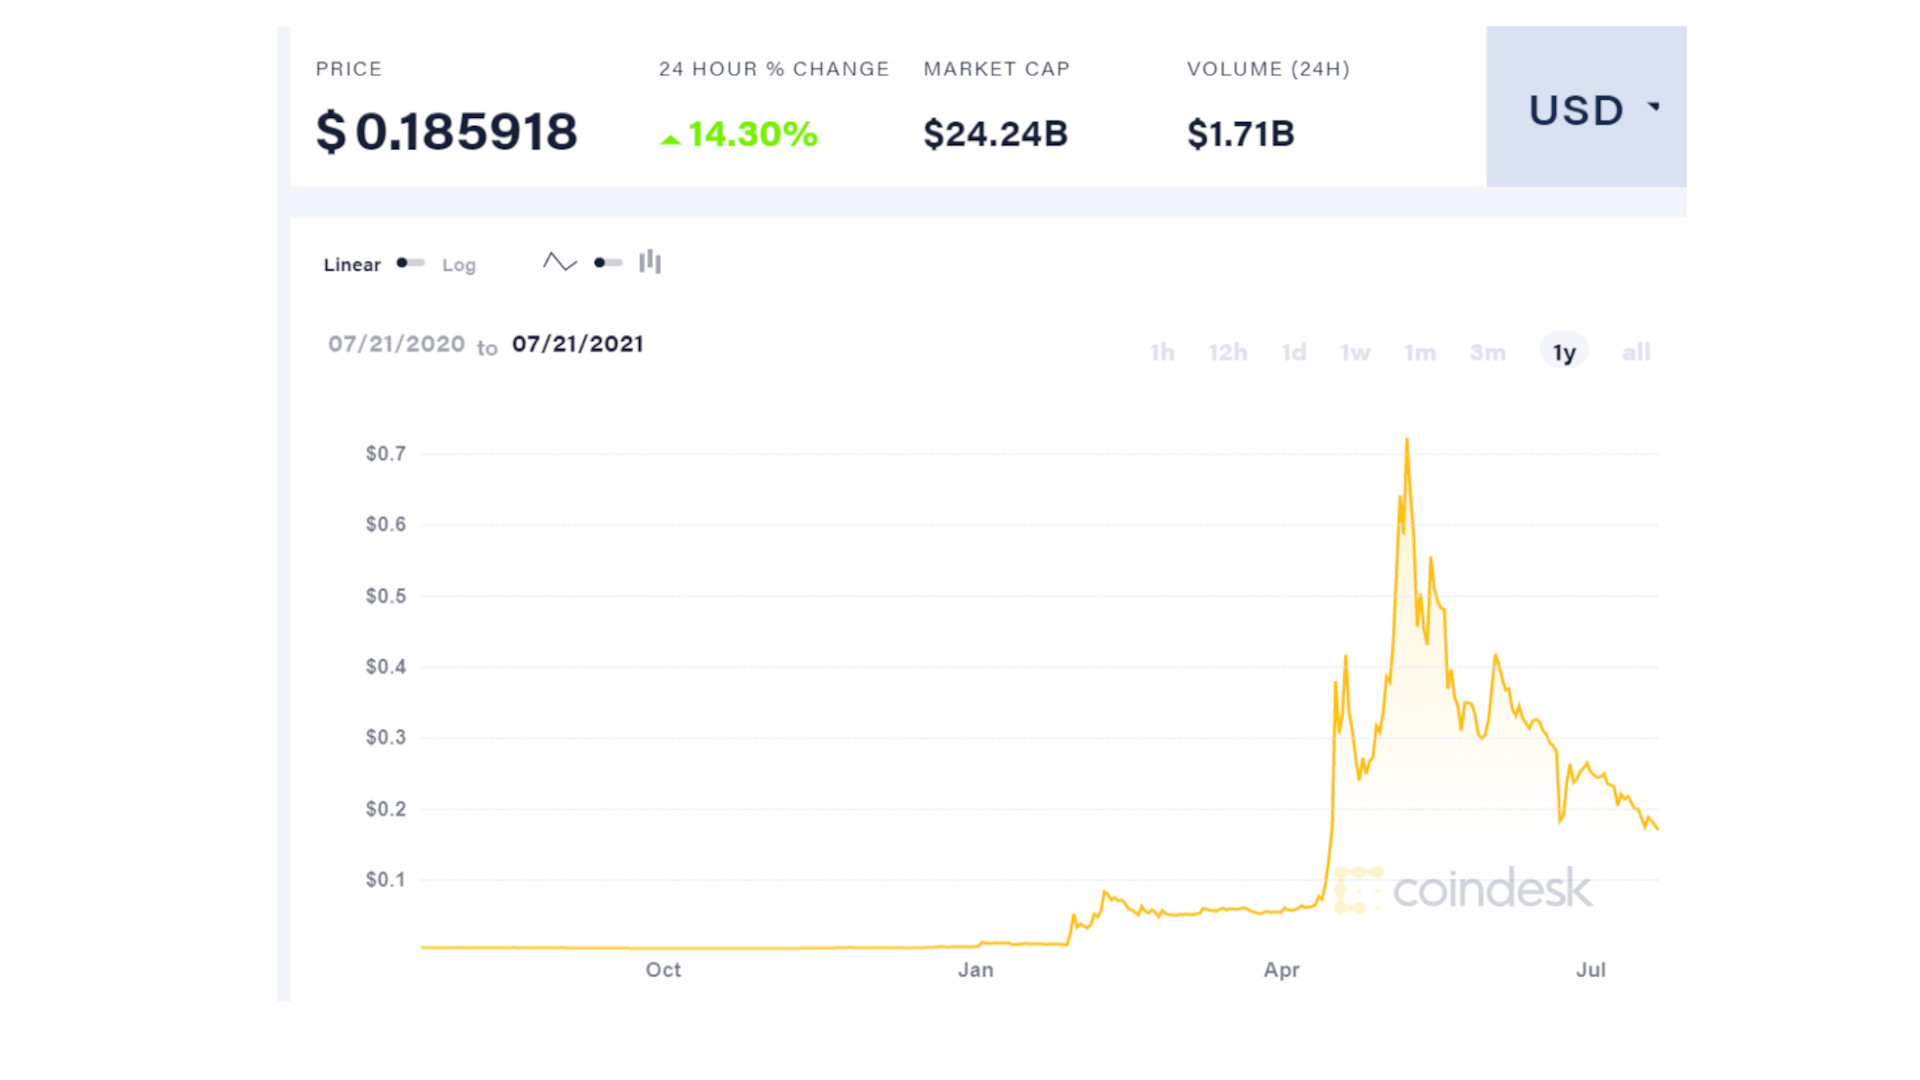 Coindesk showing Dogecoin value